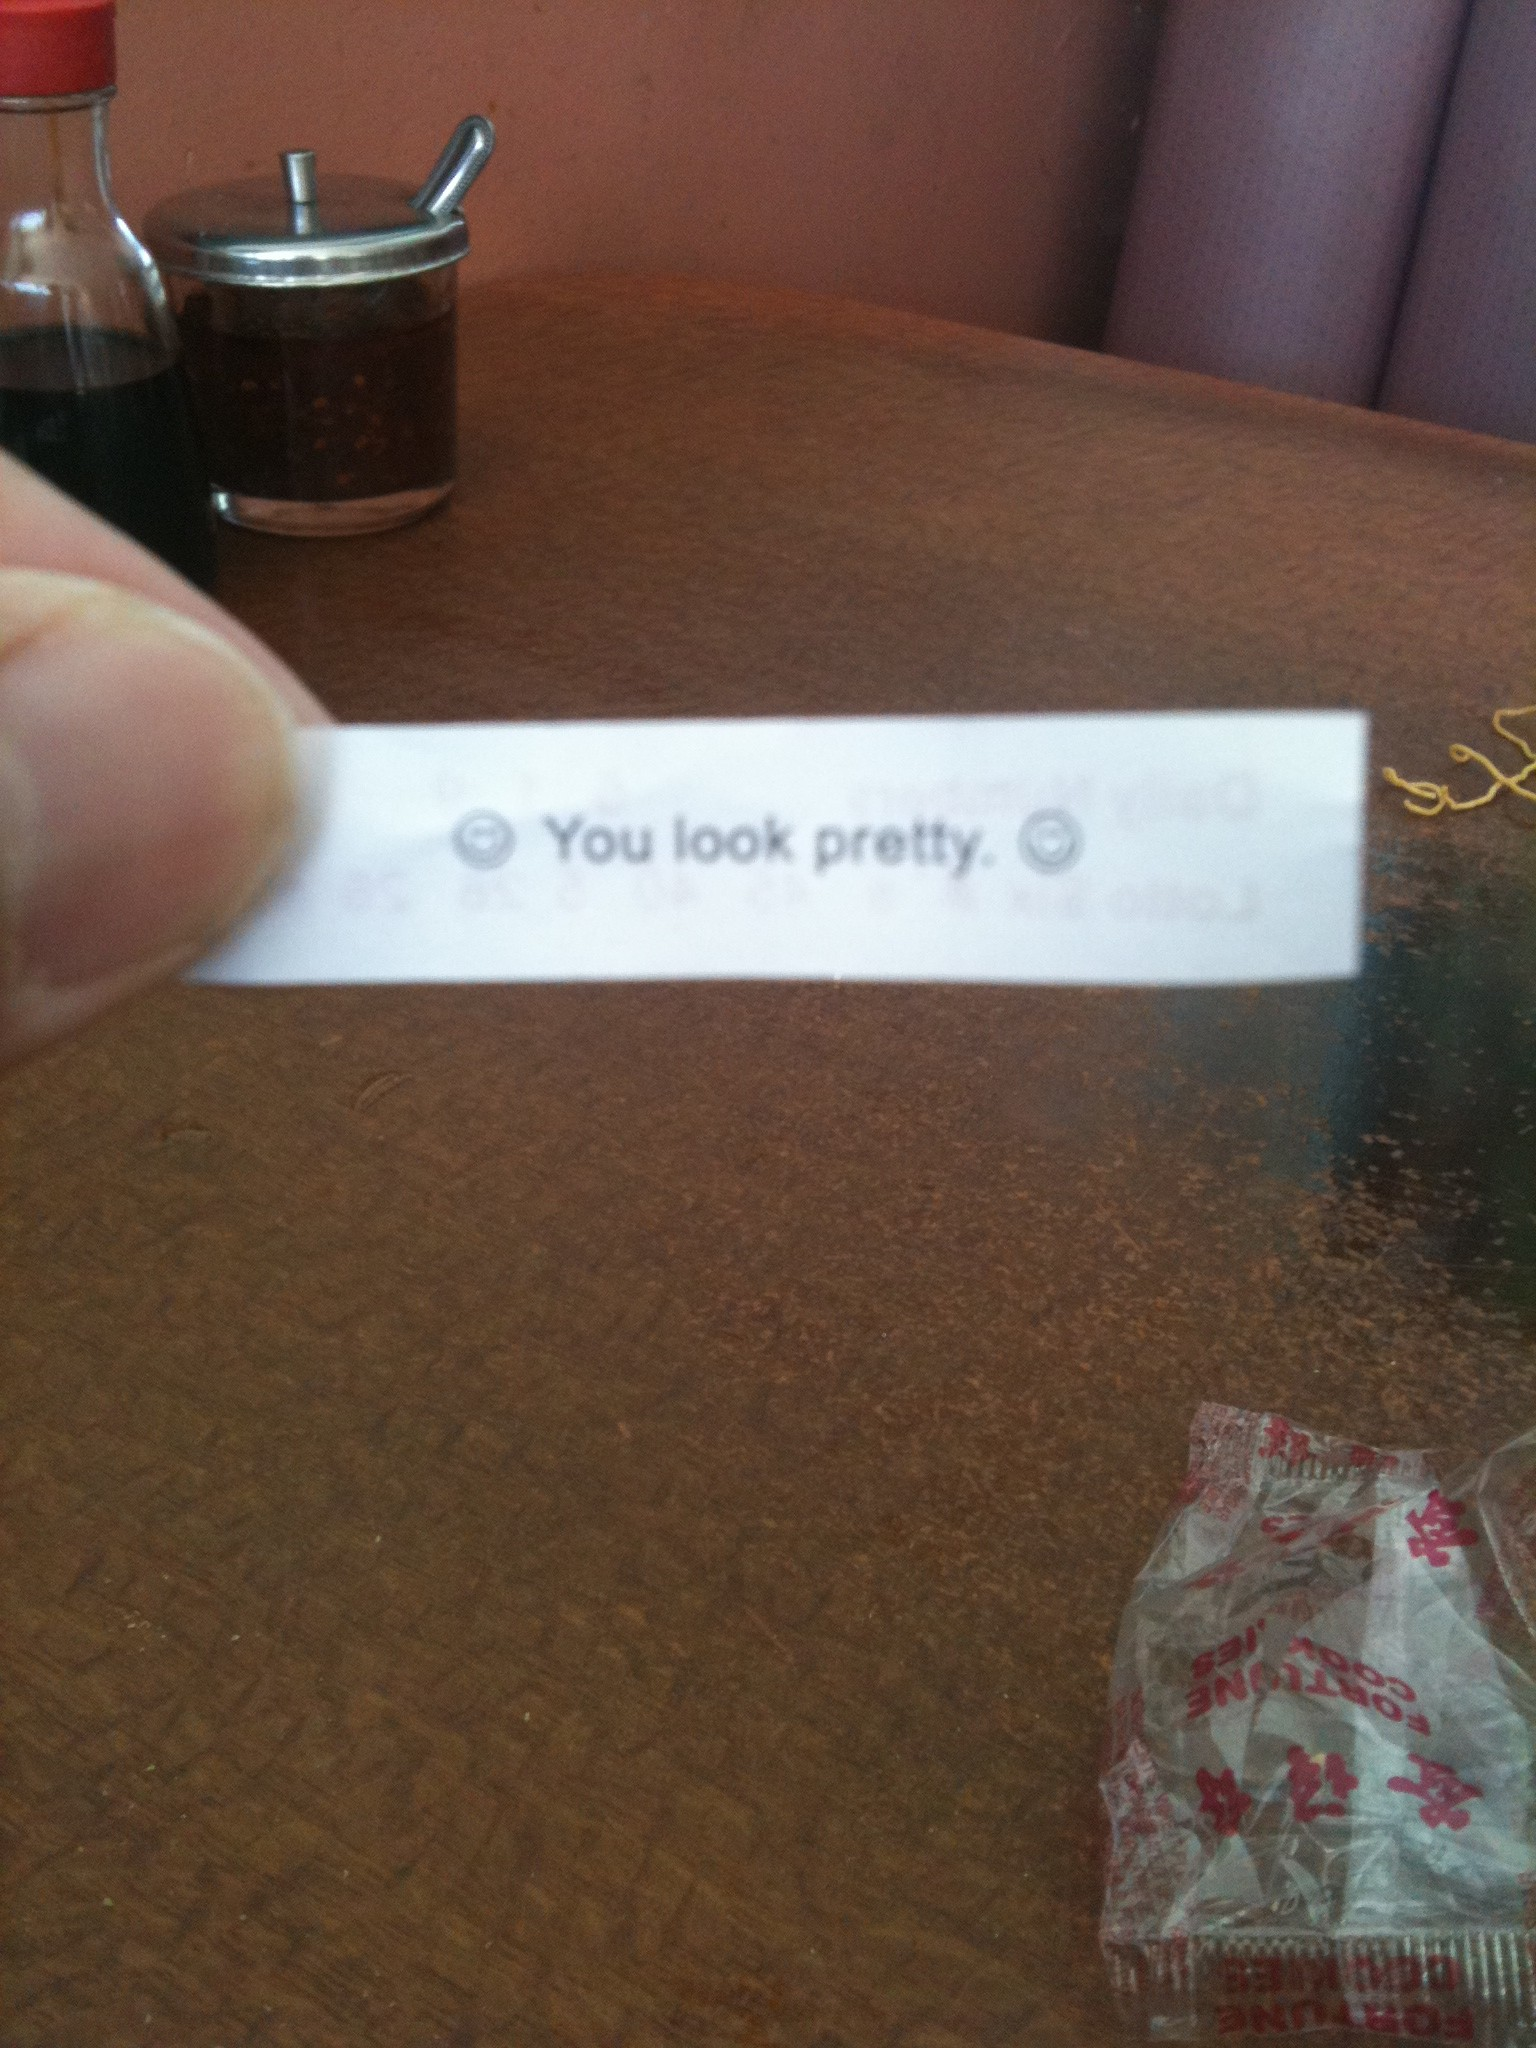 You Look Pretty!